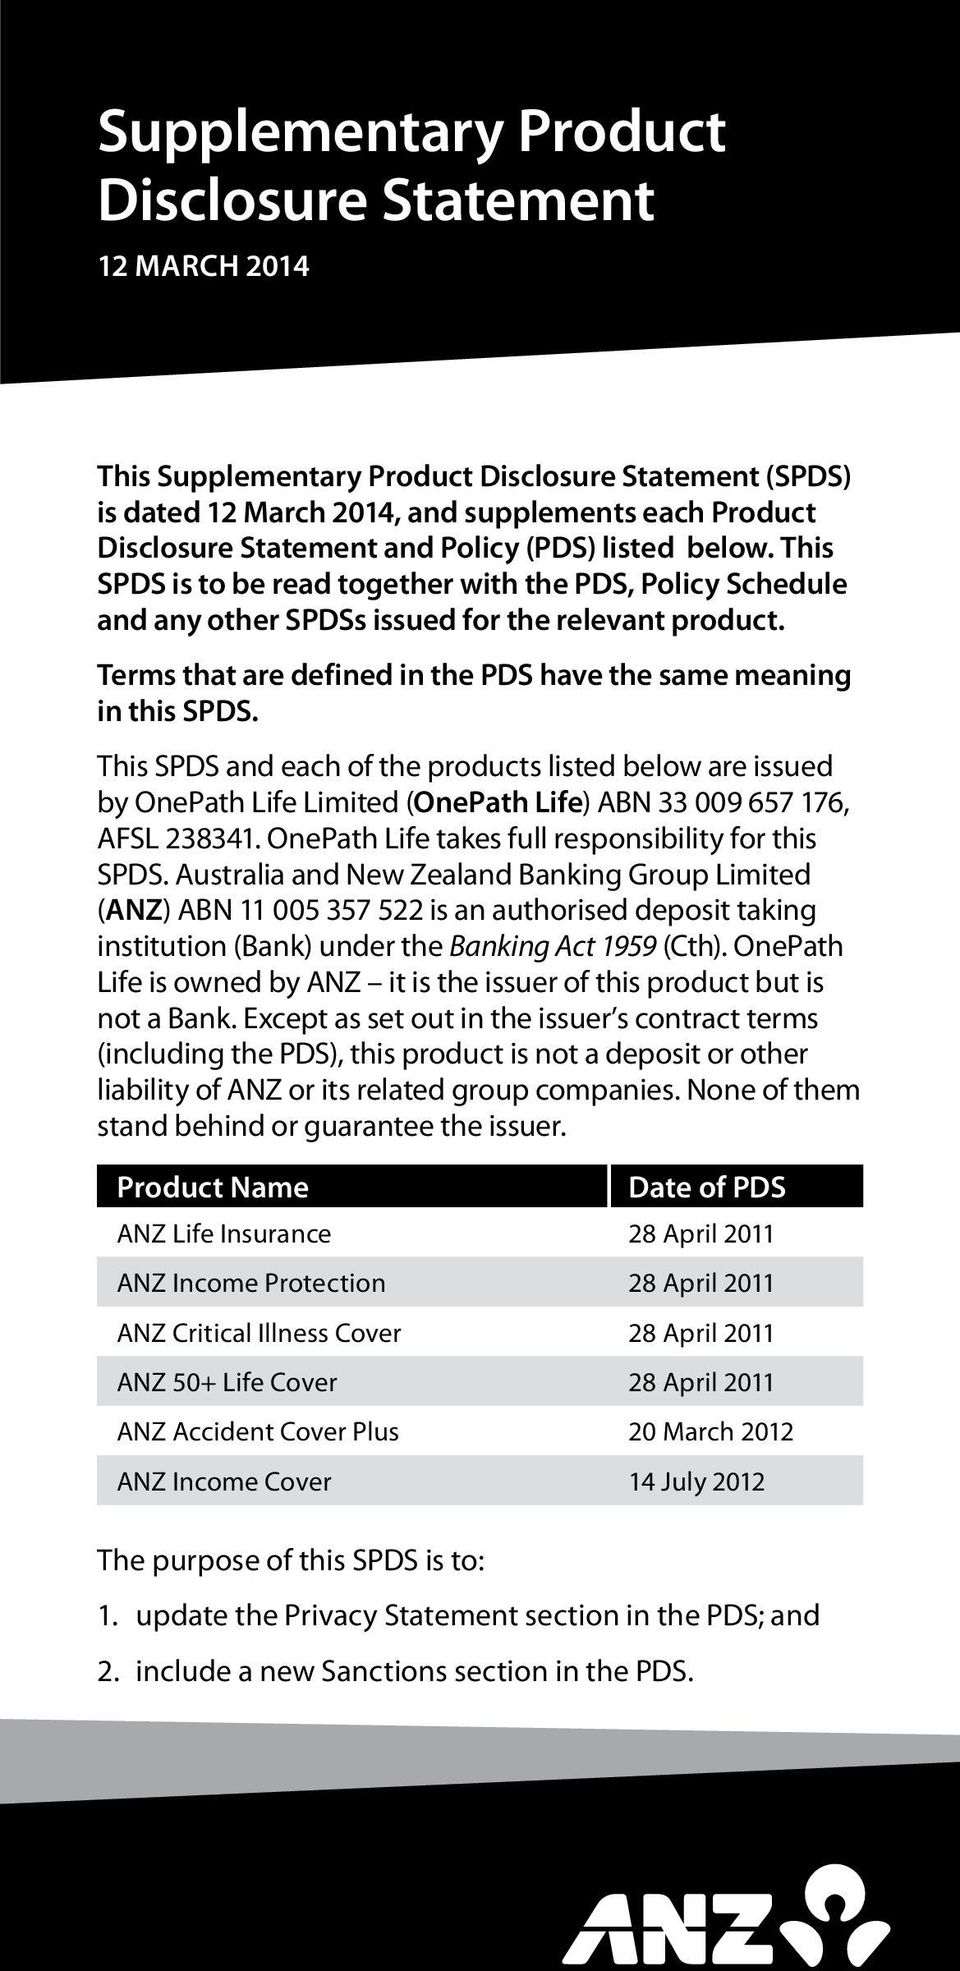 Terms that are defined in the PDS have the same meaning in this SPDS. This SPDS and each of the products listed below are issued by OnePath Life Limited (OnePath Life) ABN 33 009 657 176, AFSL 238341.